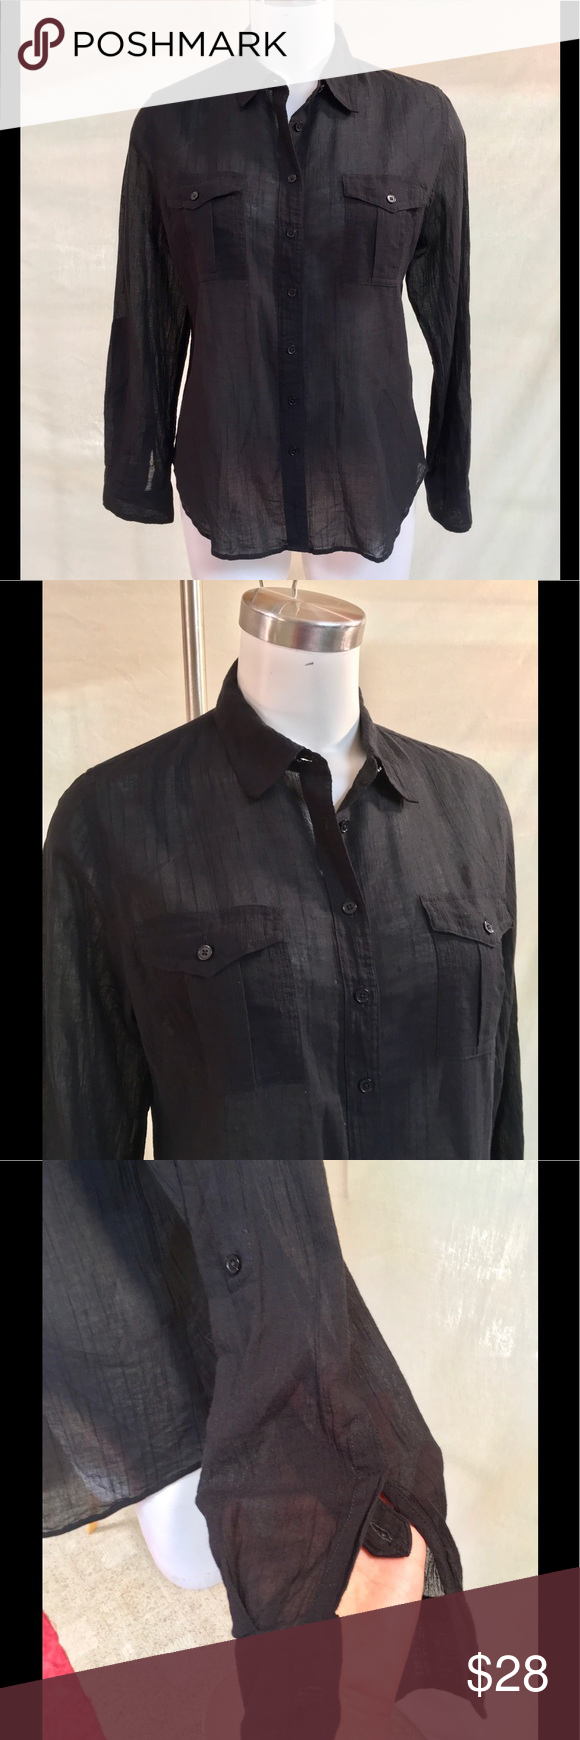 Talbots Black Button Down The perfect summertime black button down shirt! From Talbots. The sleeves can be buttoned to make it 3/4 length. Slightly sheer. Comfy. Size 14 petite and good condition! Talbots Tops Button Down Shirts